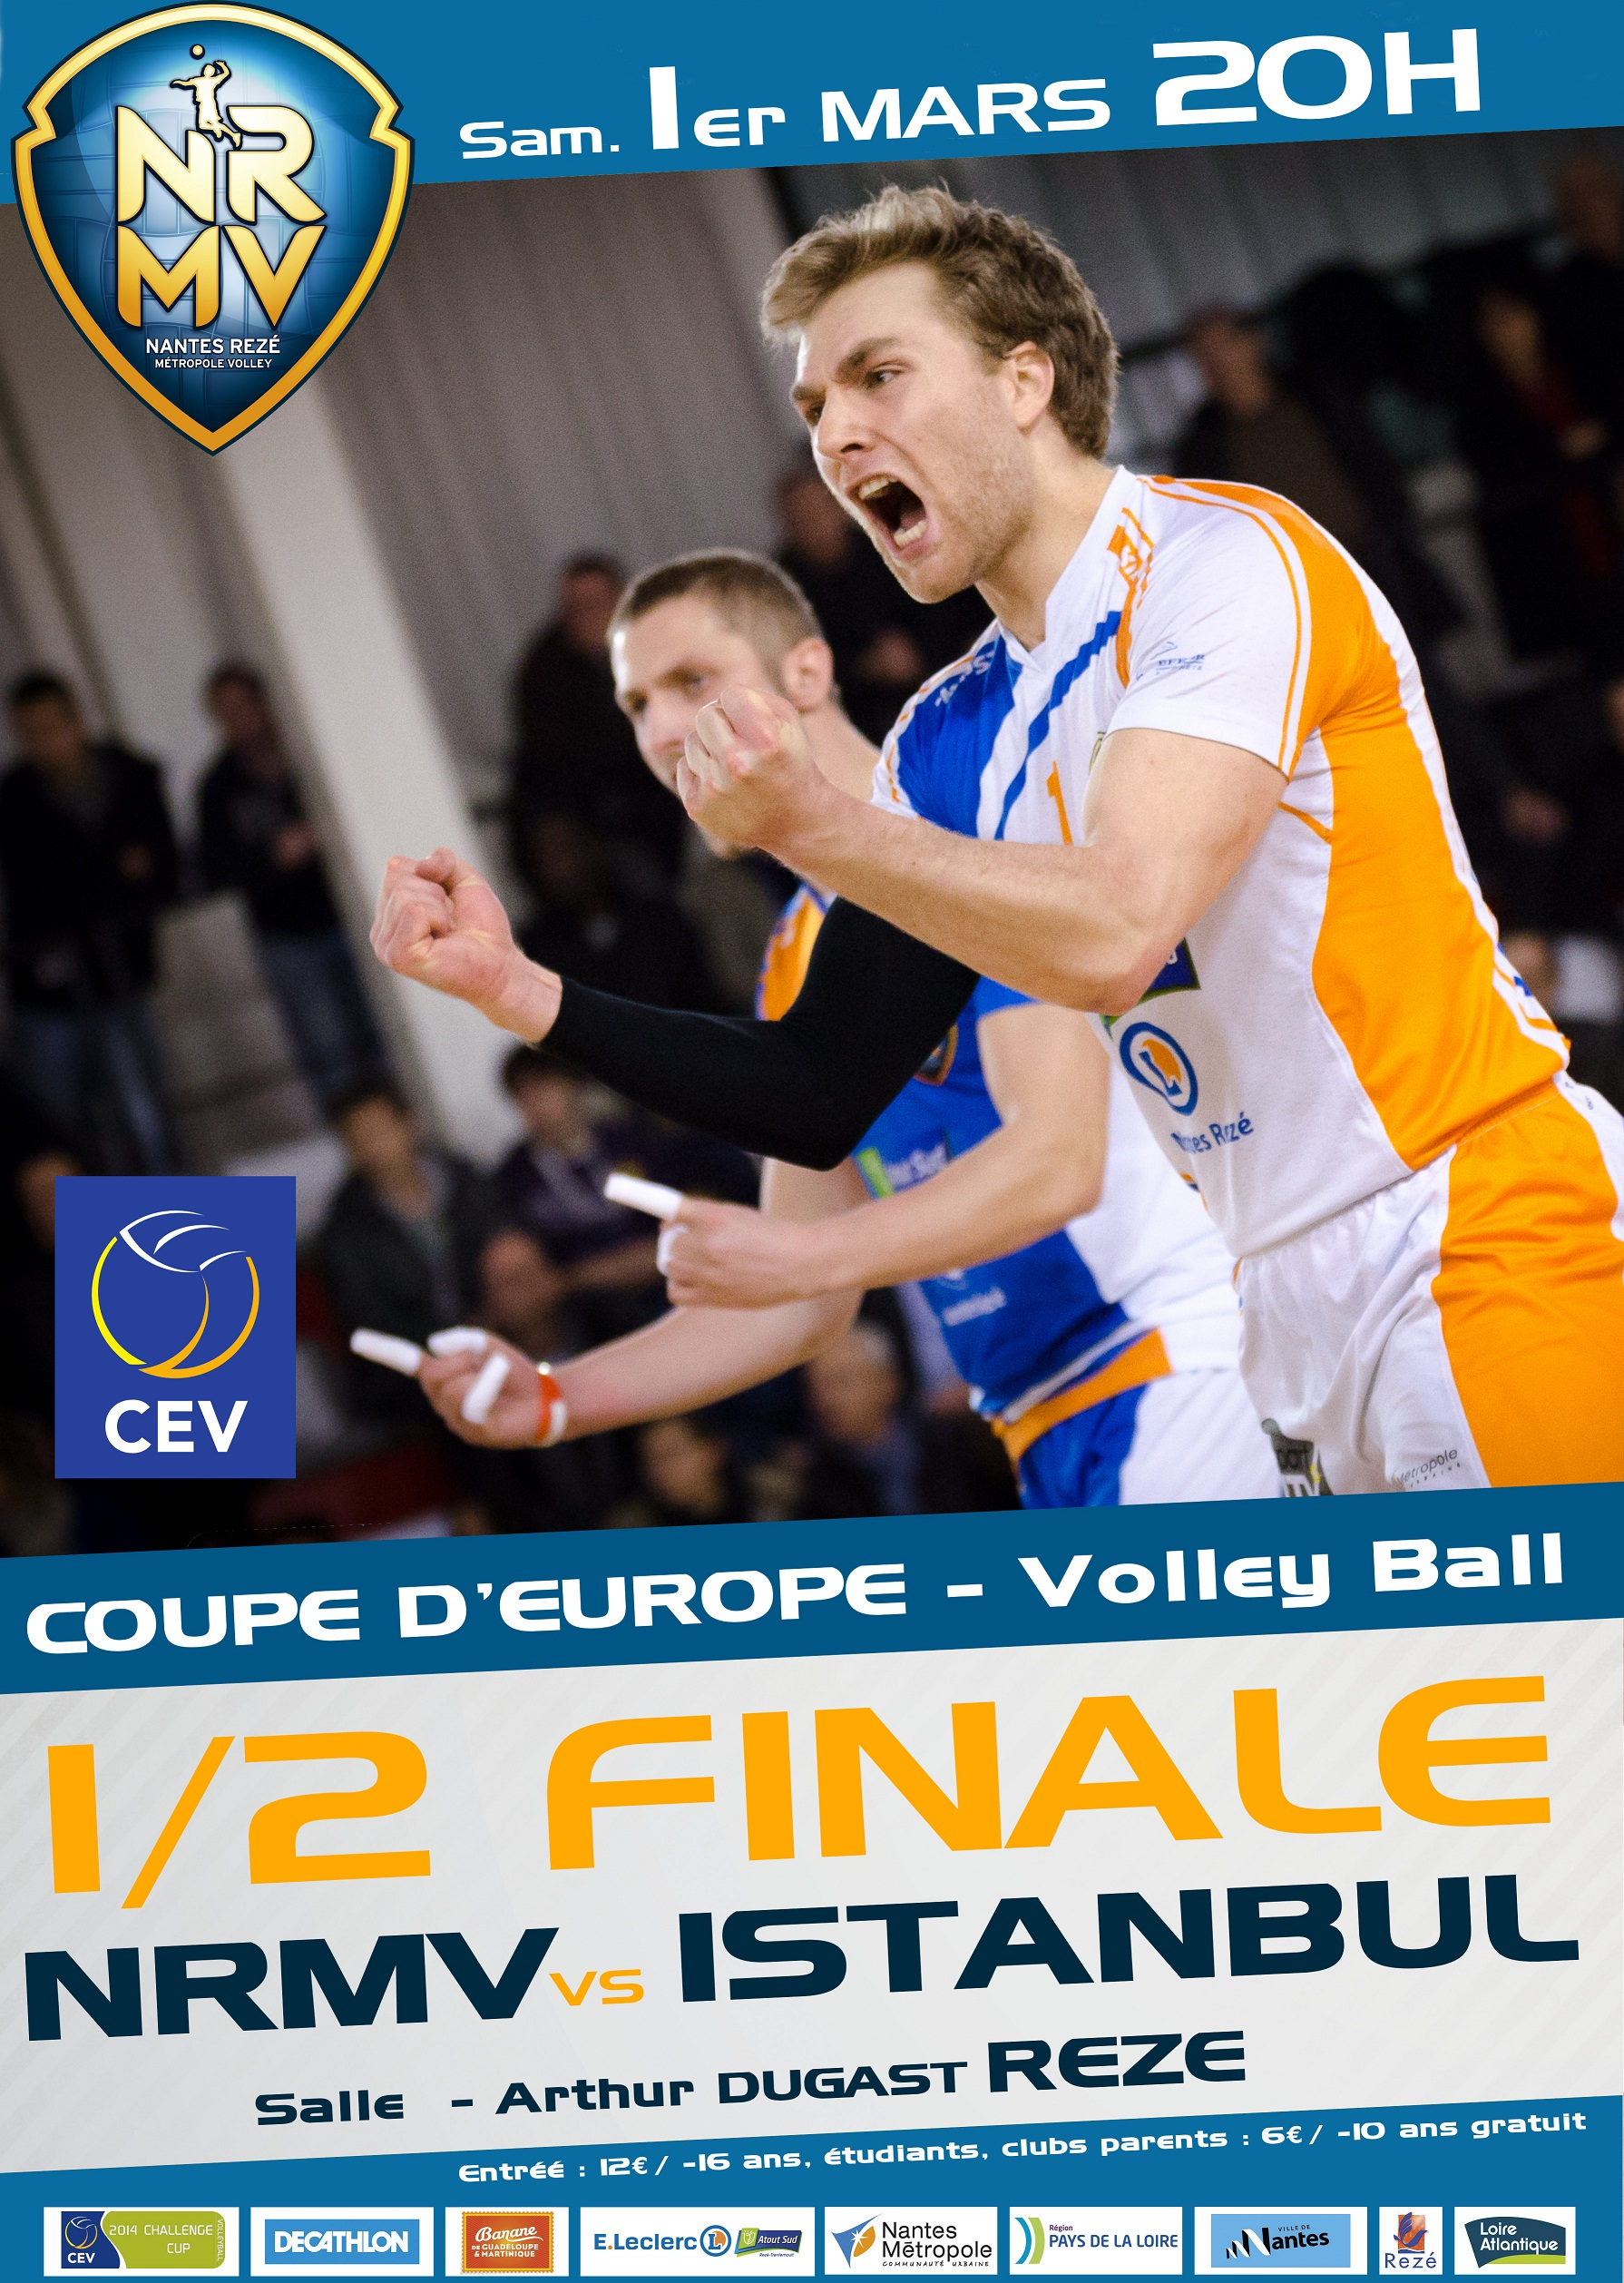 NRMV : vers la finale de la coupe d'Europe de Volley ?